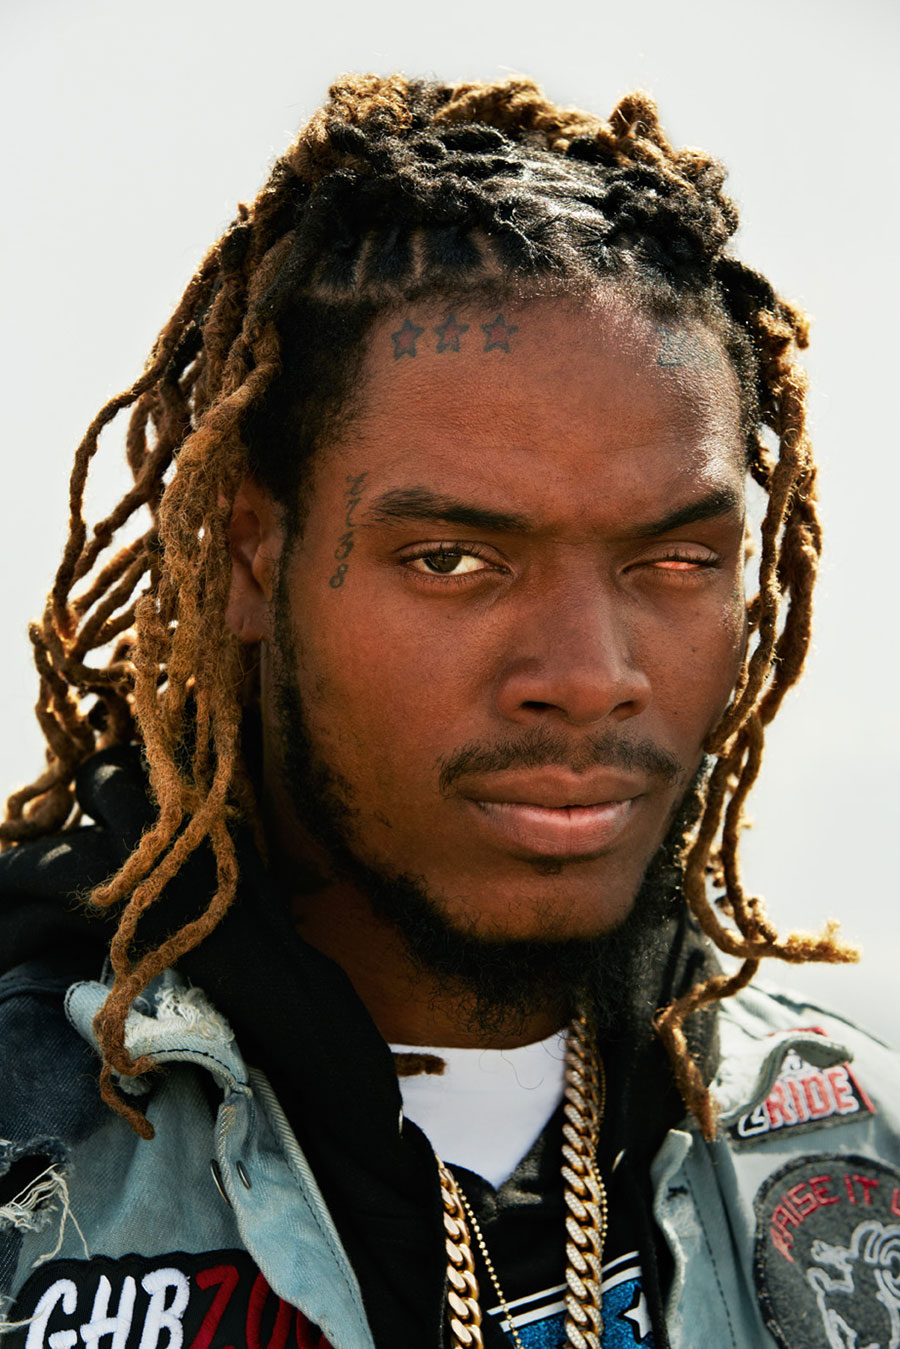 schmelling-guardian-fetty-wap-2016-01